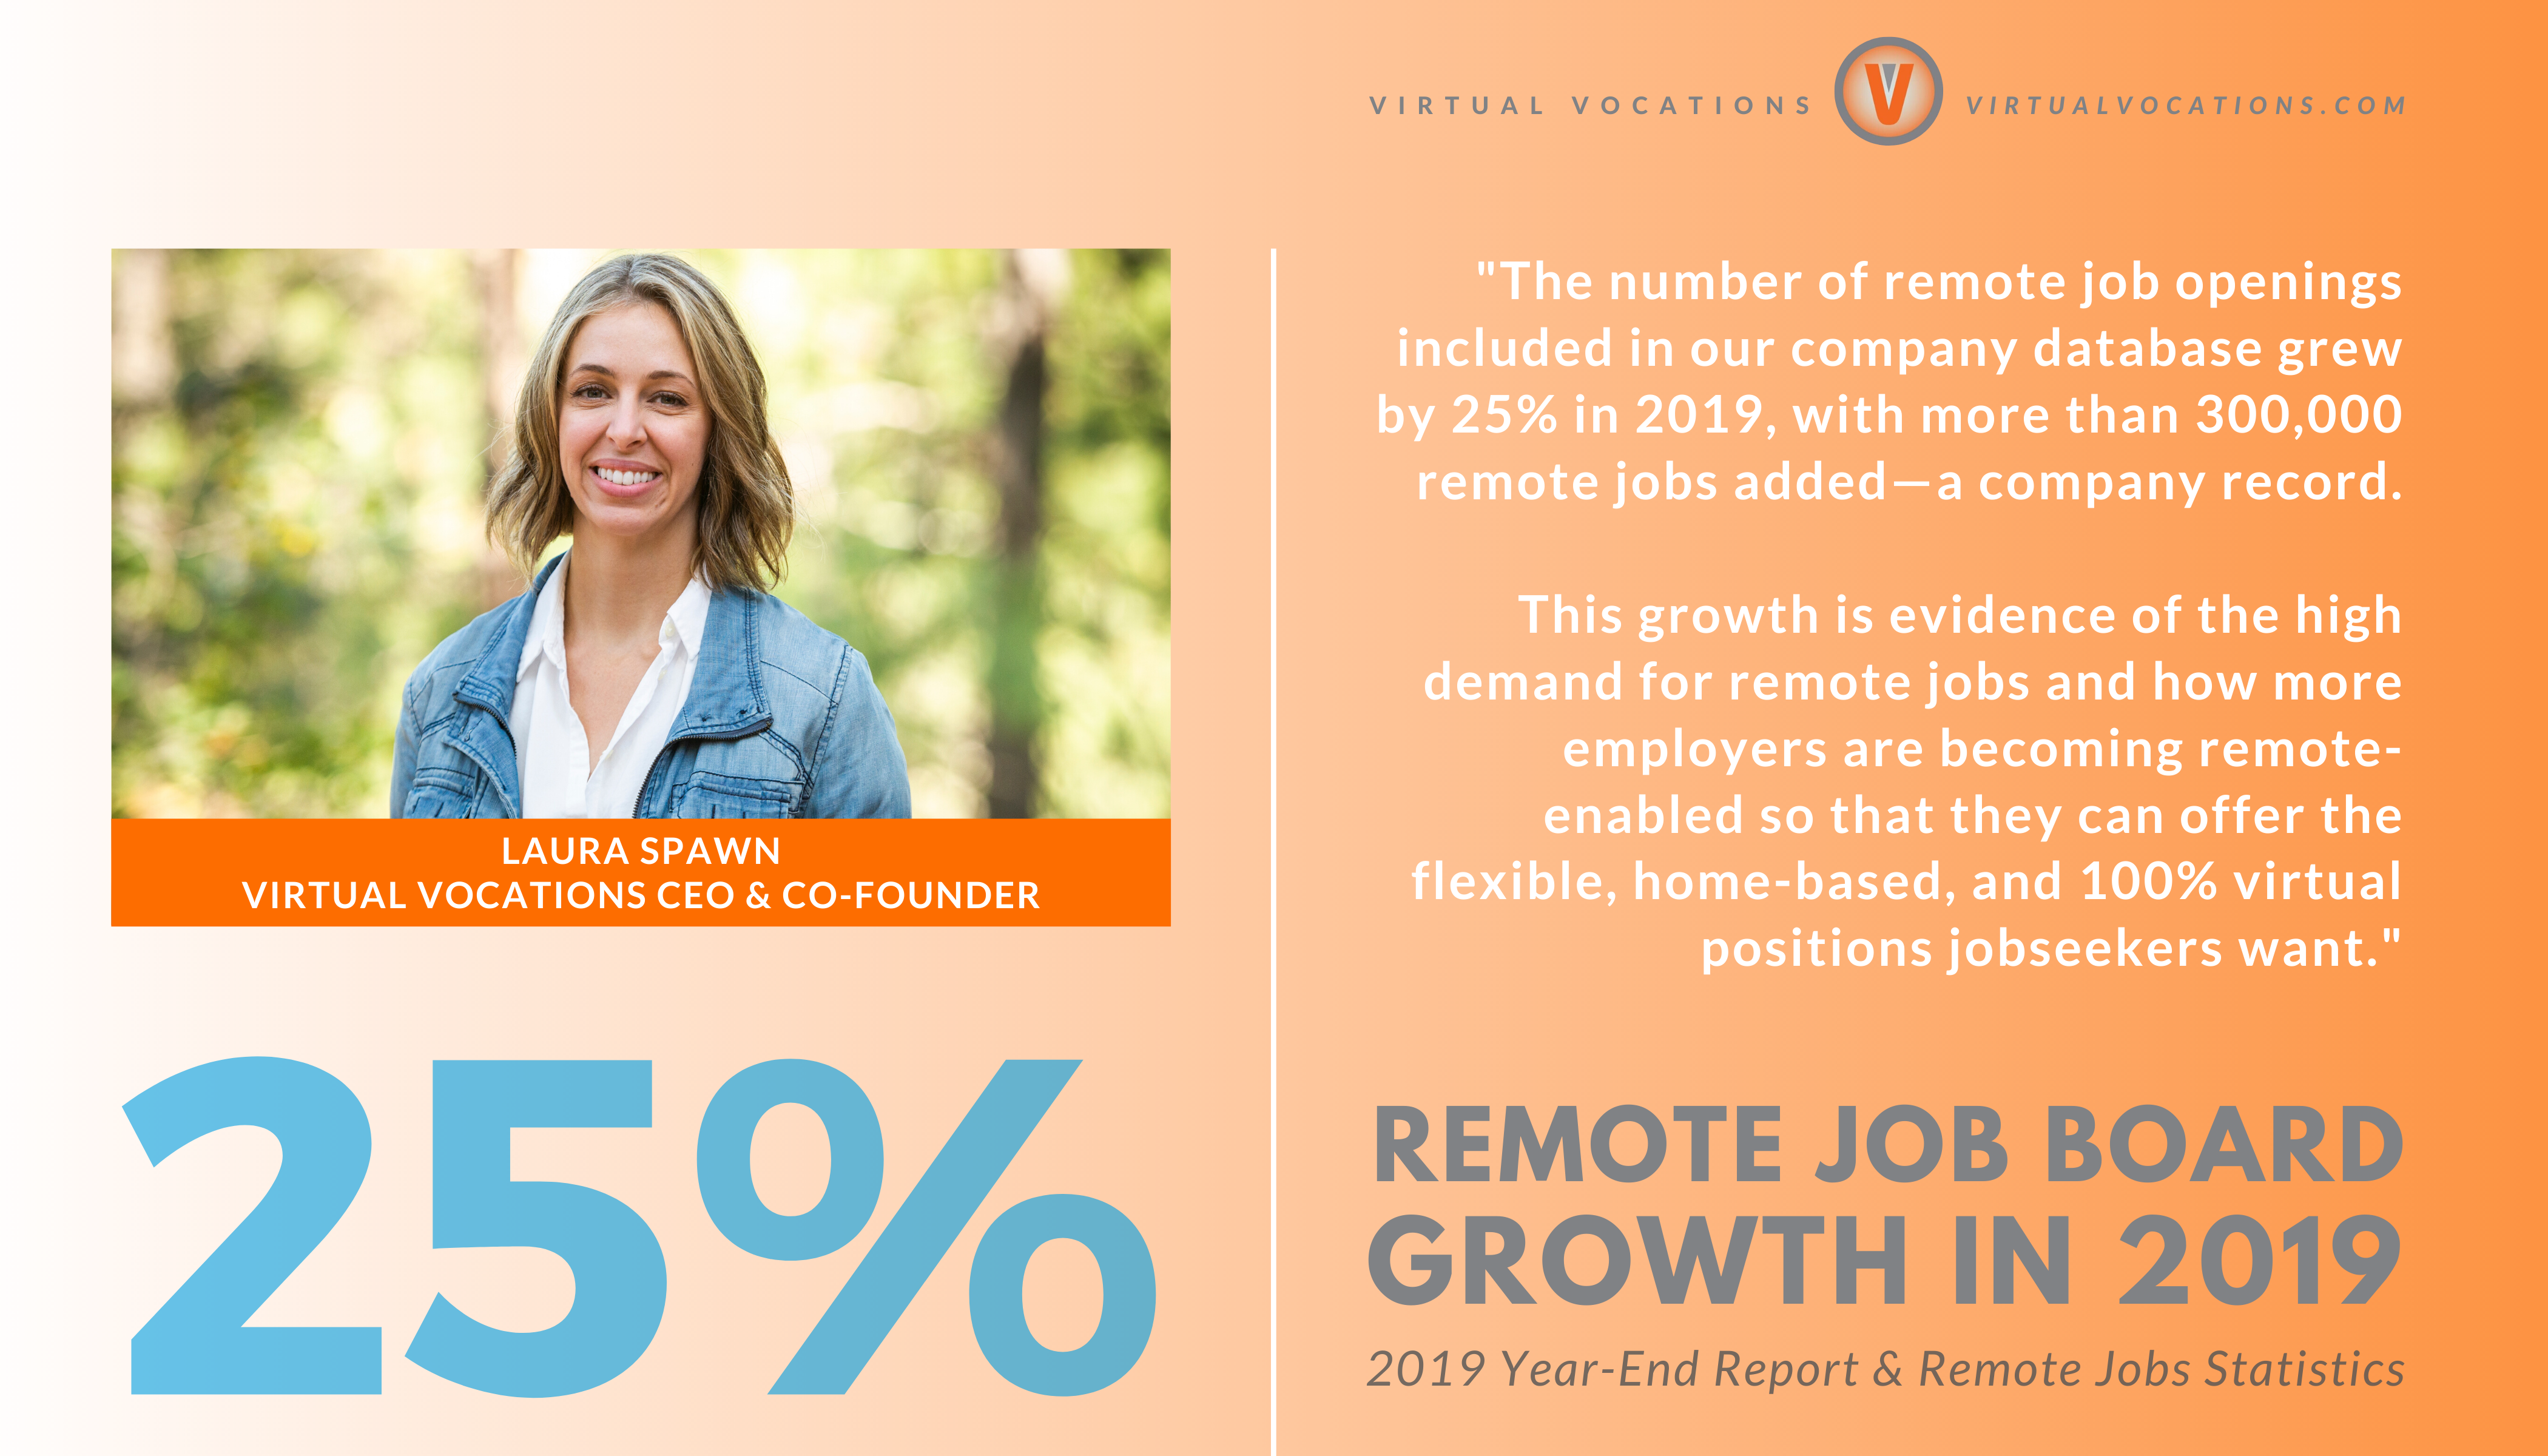 Laura Spawn Quote - Virtual Vocations 2019 Job Board Growth - 2019 Year-End Report and Remote Jobs Statistics